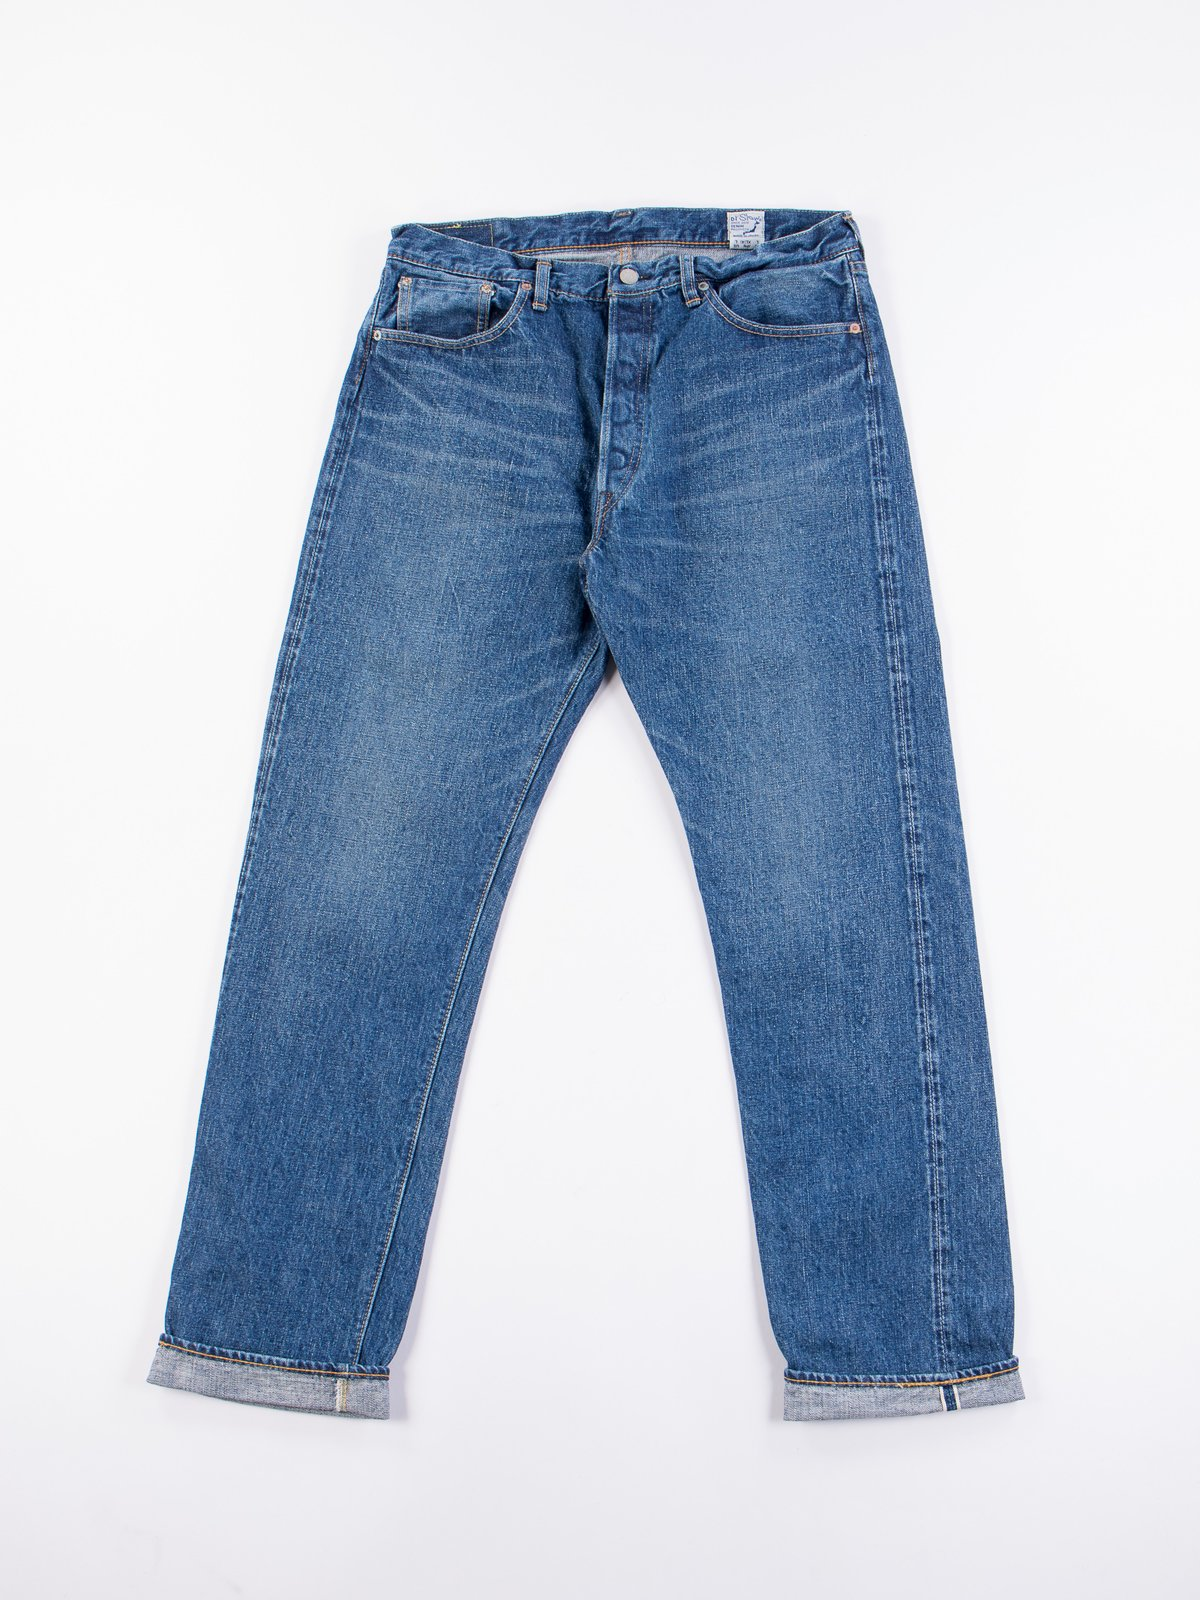 2 Year Wash 105 Standard 5 Pocket Jean - Image 1